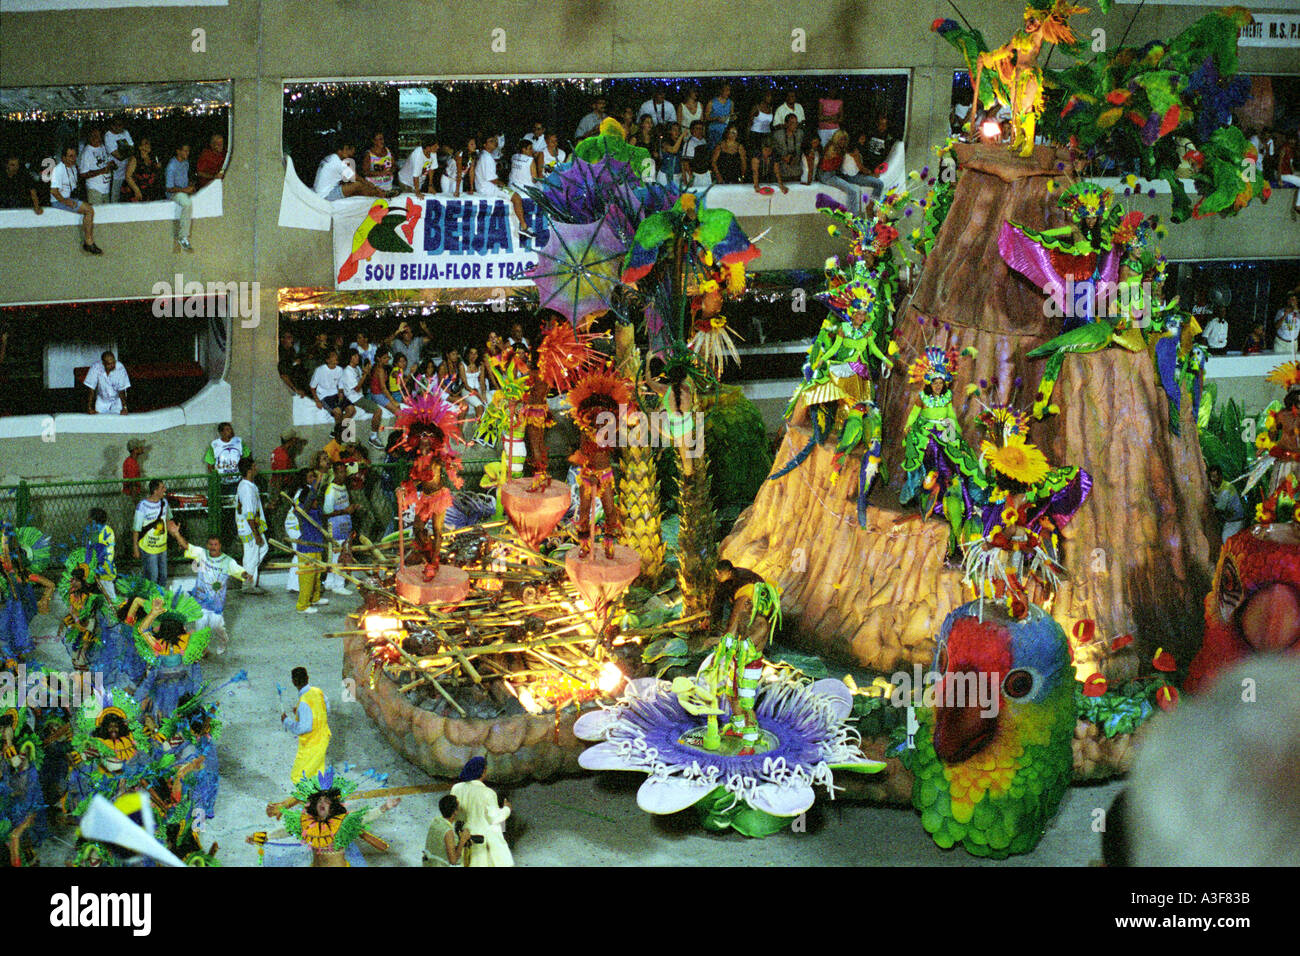 Men And Women In Costume Parading On A Tropical Themed Float In Rio Stock Photo Royalty Free